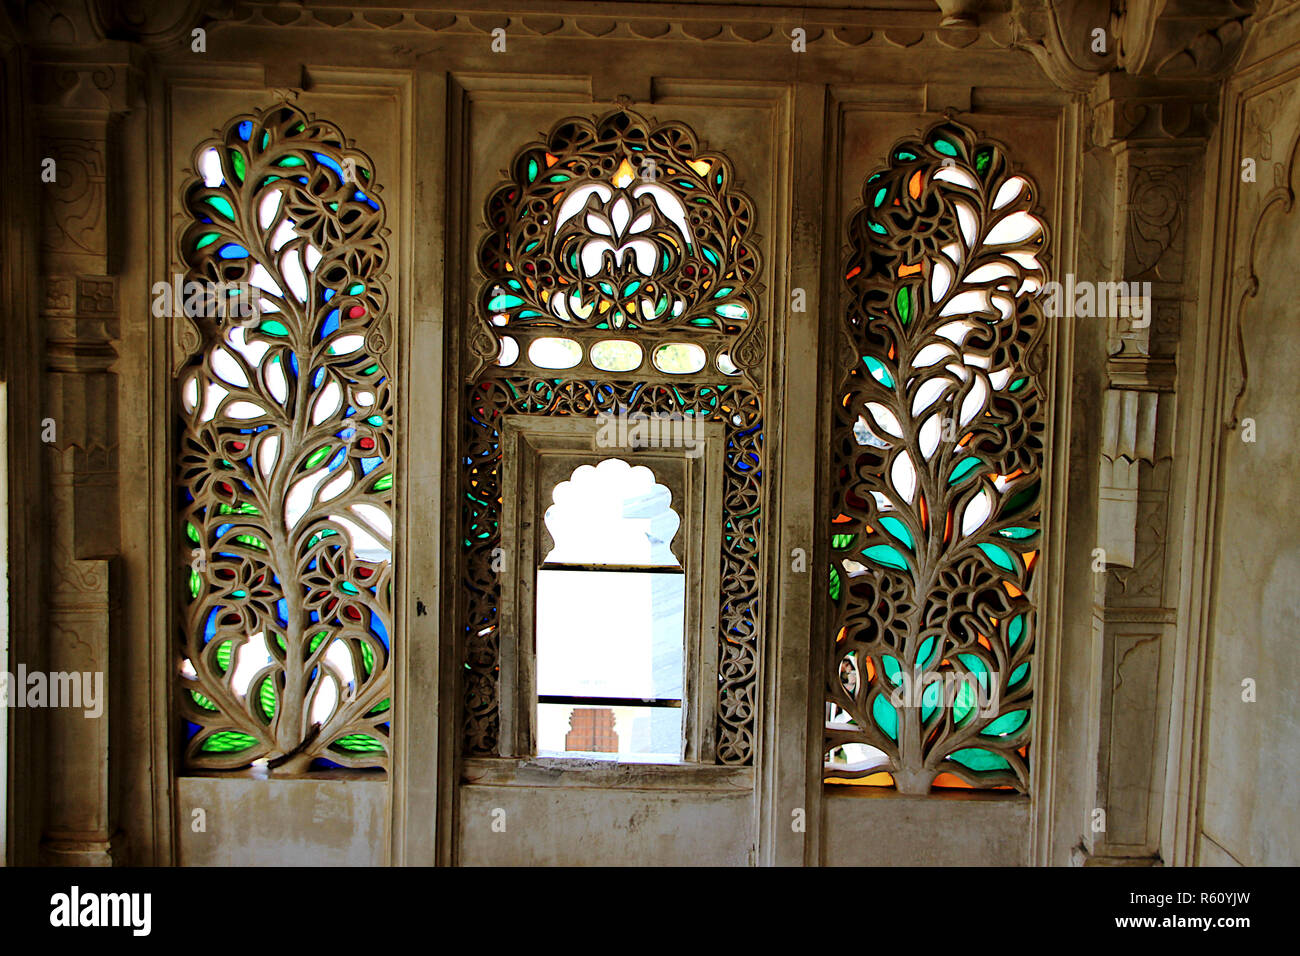 4b0e8d06ef15 Intricate and decorative etching of floral design on window panes at City  Palace